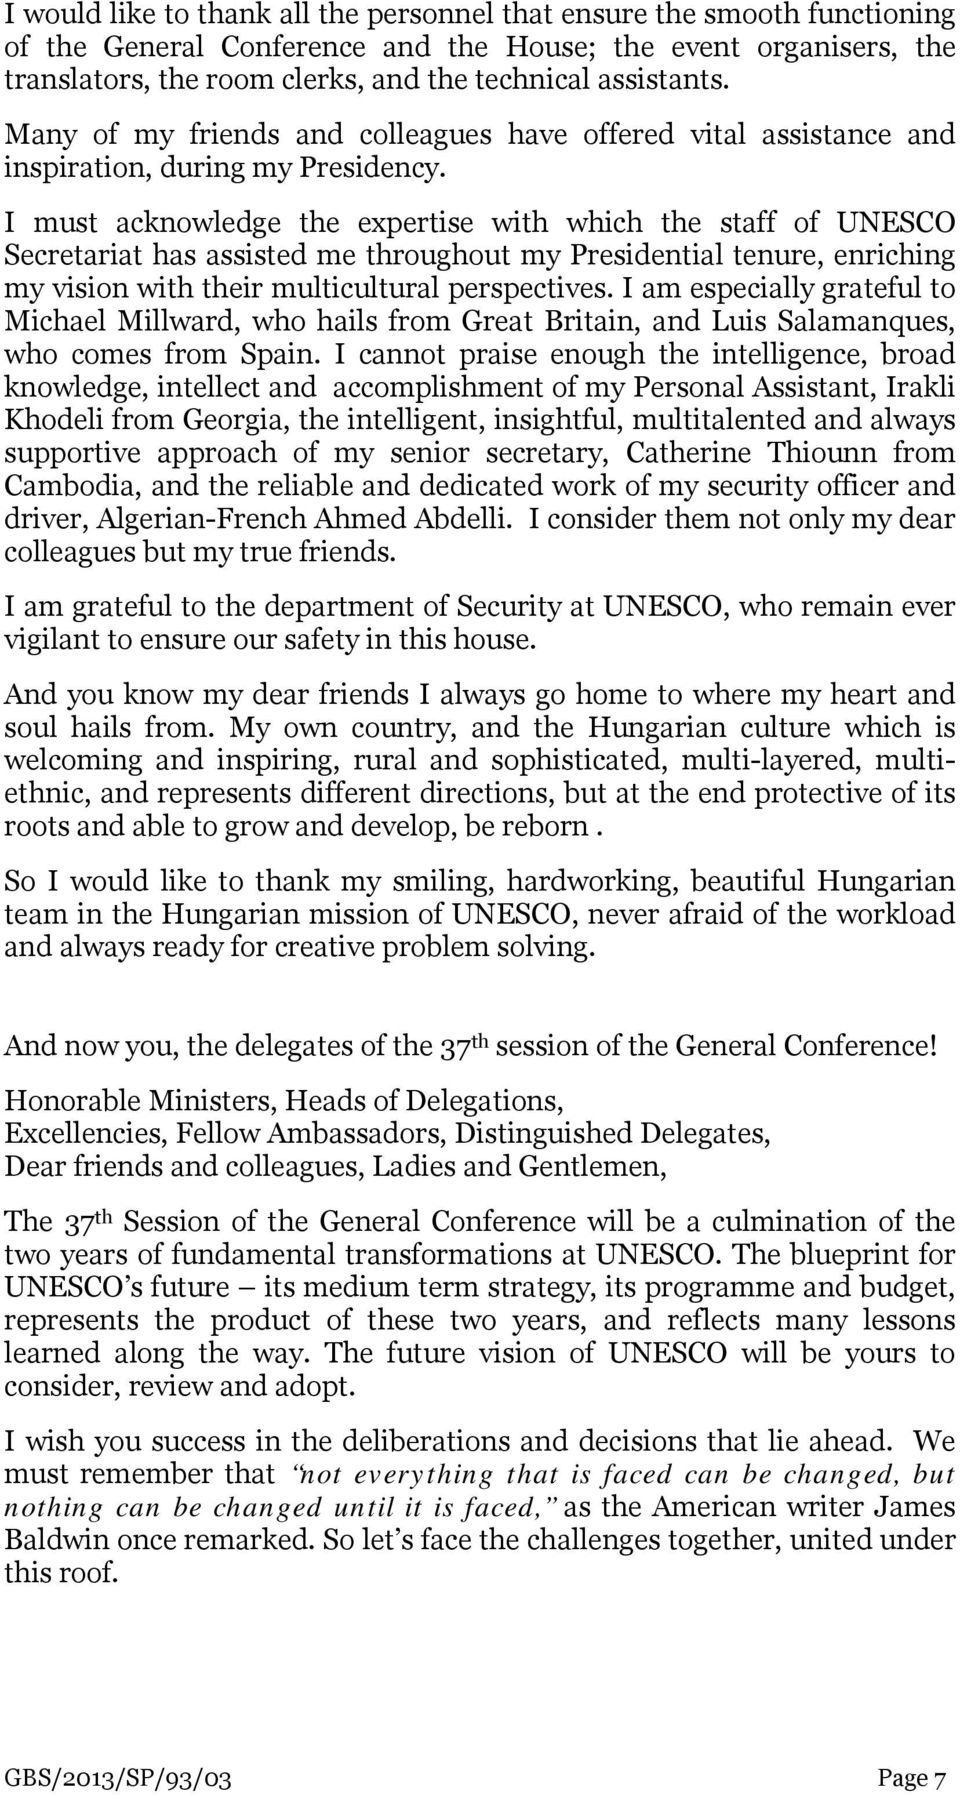 I must acknowledge the expertise with which the staff of UNESCO Secretariat has assisted me throughout my Presidential tenure, enriching my vision with their multicultural perspectives.